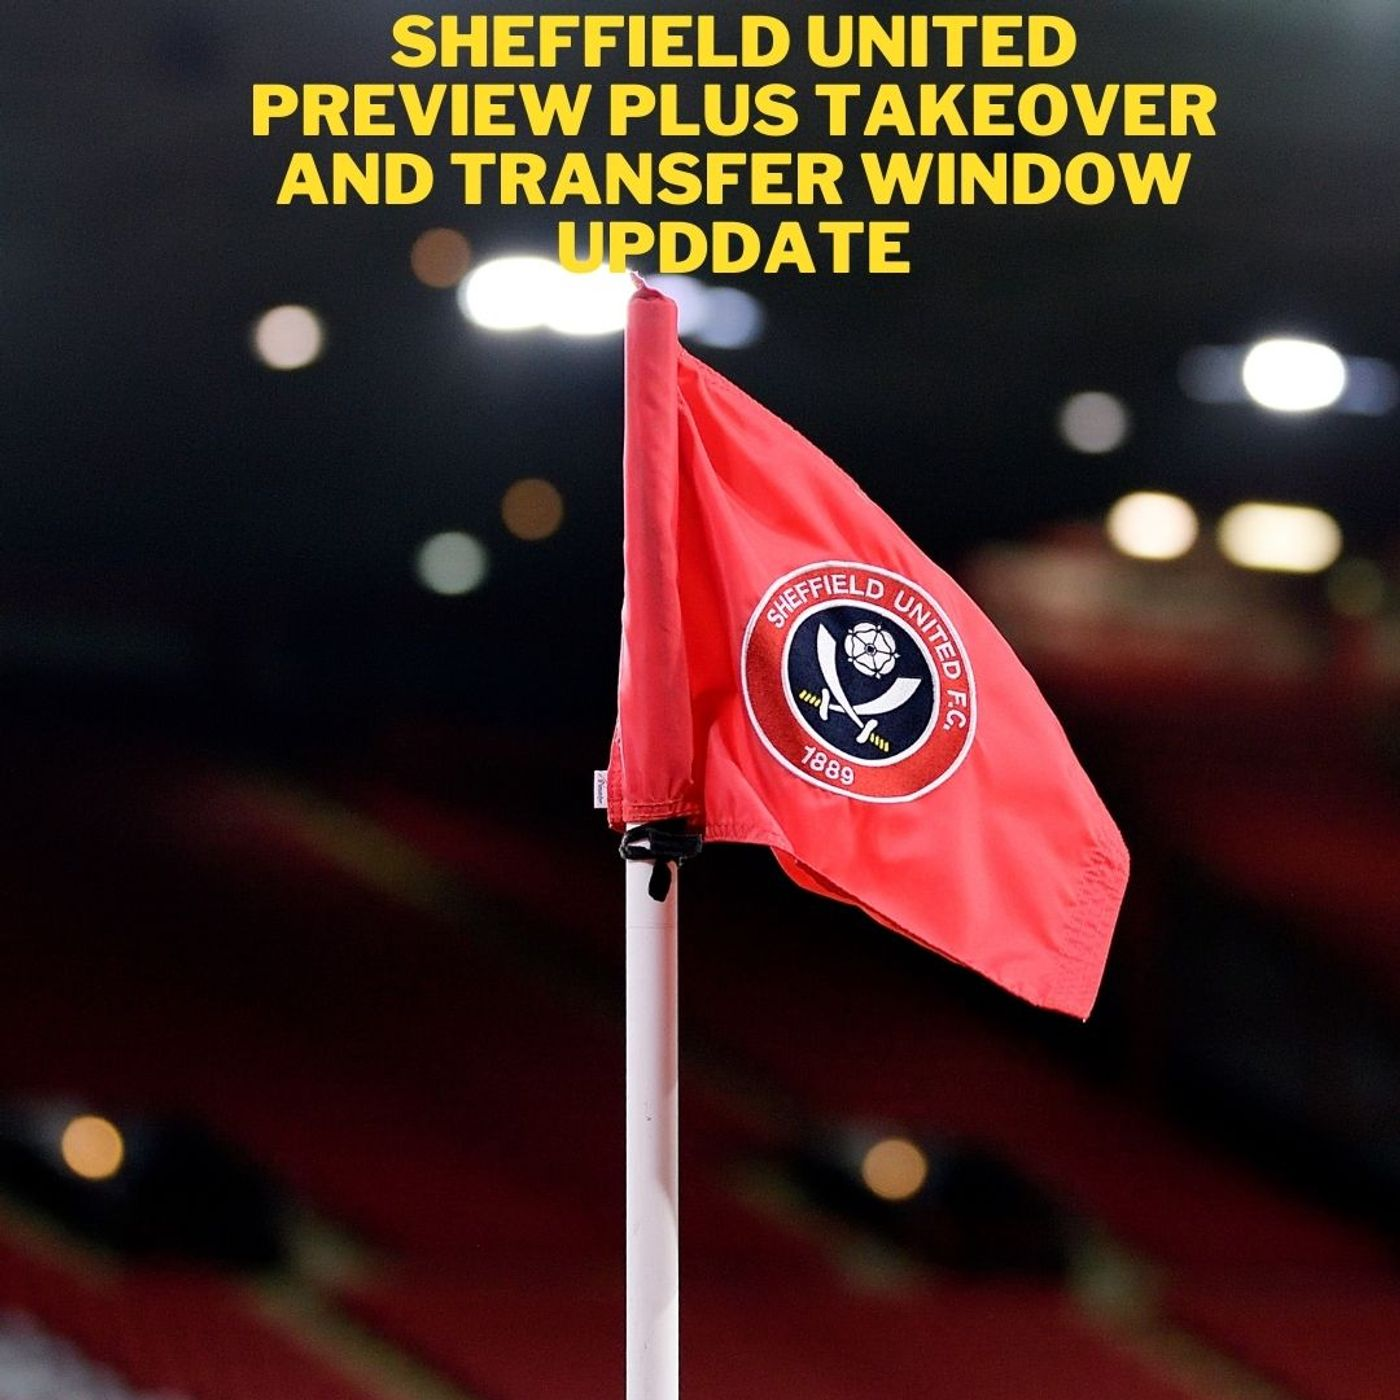 Takeover and transfer update plus a look ahead to Sheffield United vs Newcastle United